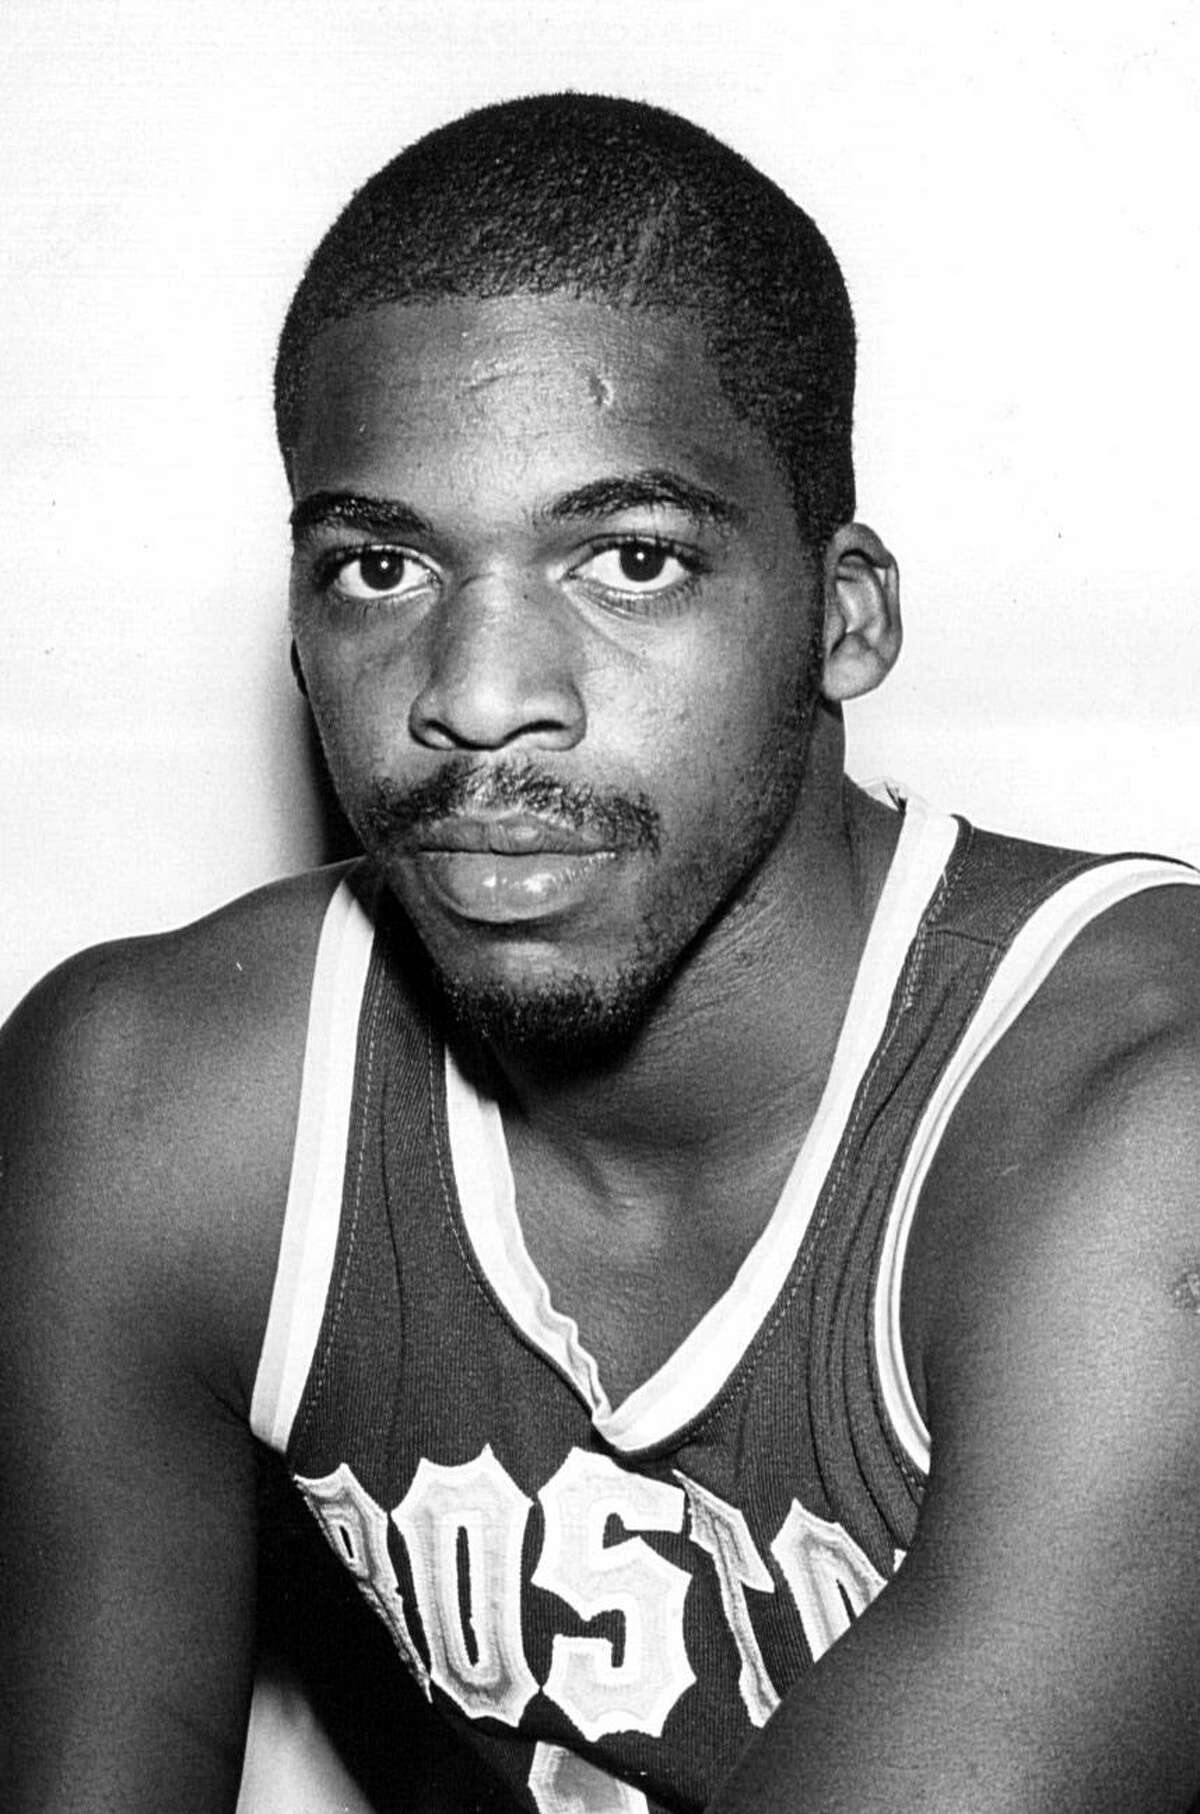 PRINT ARCHIVE: John Bagley, a standout basketball player at Harding High School, in Bridgeport, went on to a career playing in the NBA.